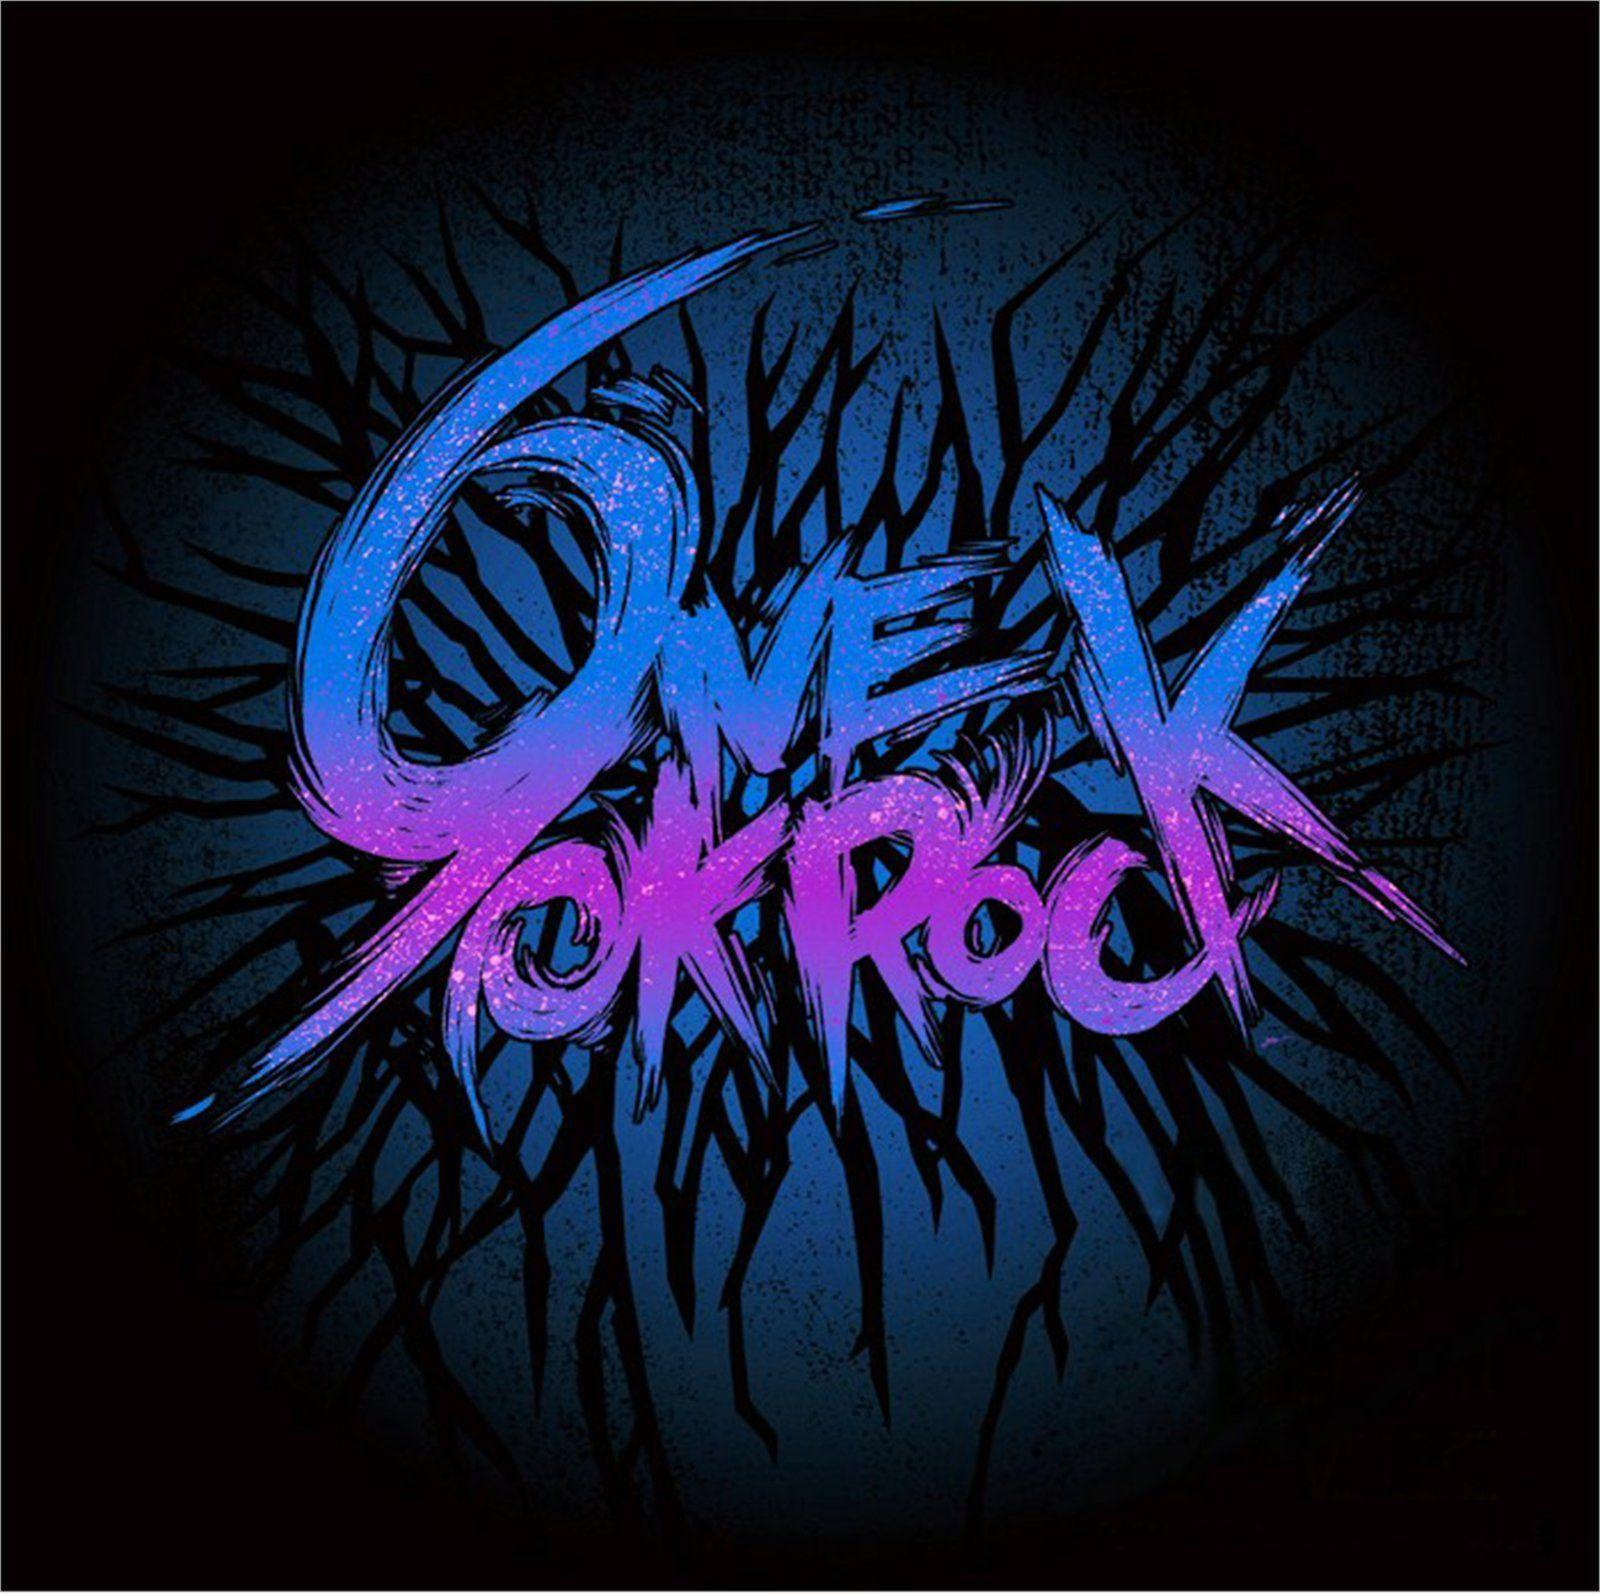 ONE OK ROCK skull logo by XXTaniaMoritaXX on DeviantArt